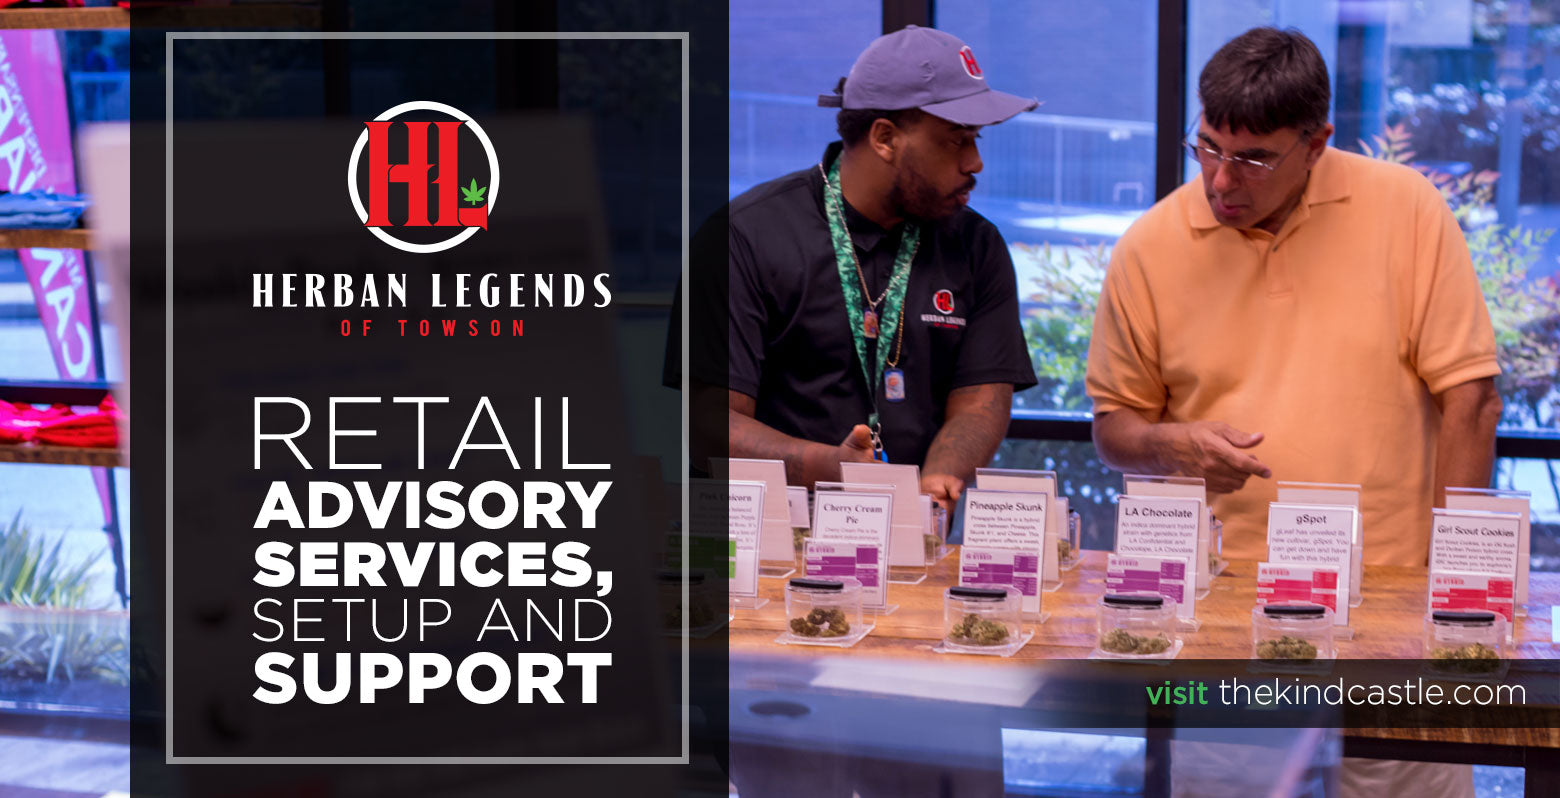 Herban Legends of Towson Retail Advisory Services Setup and Support